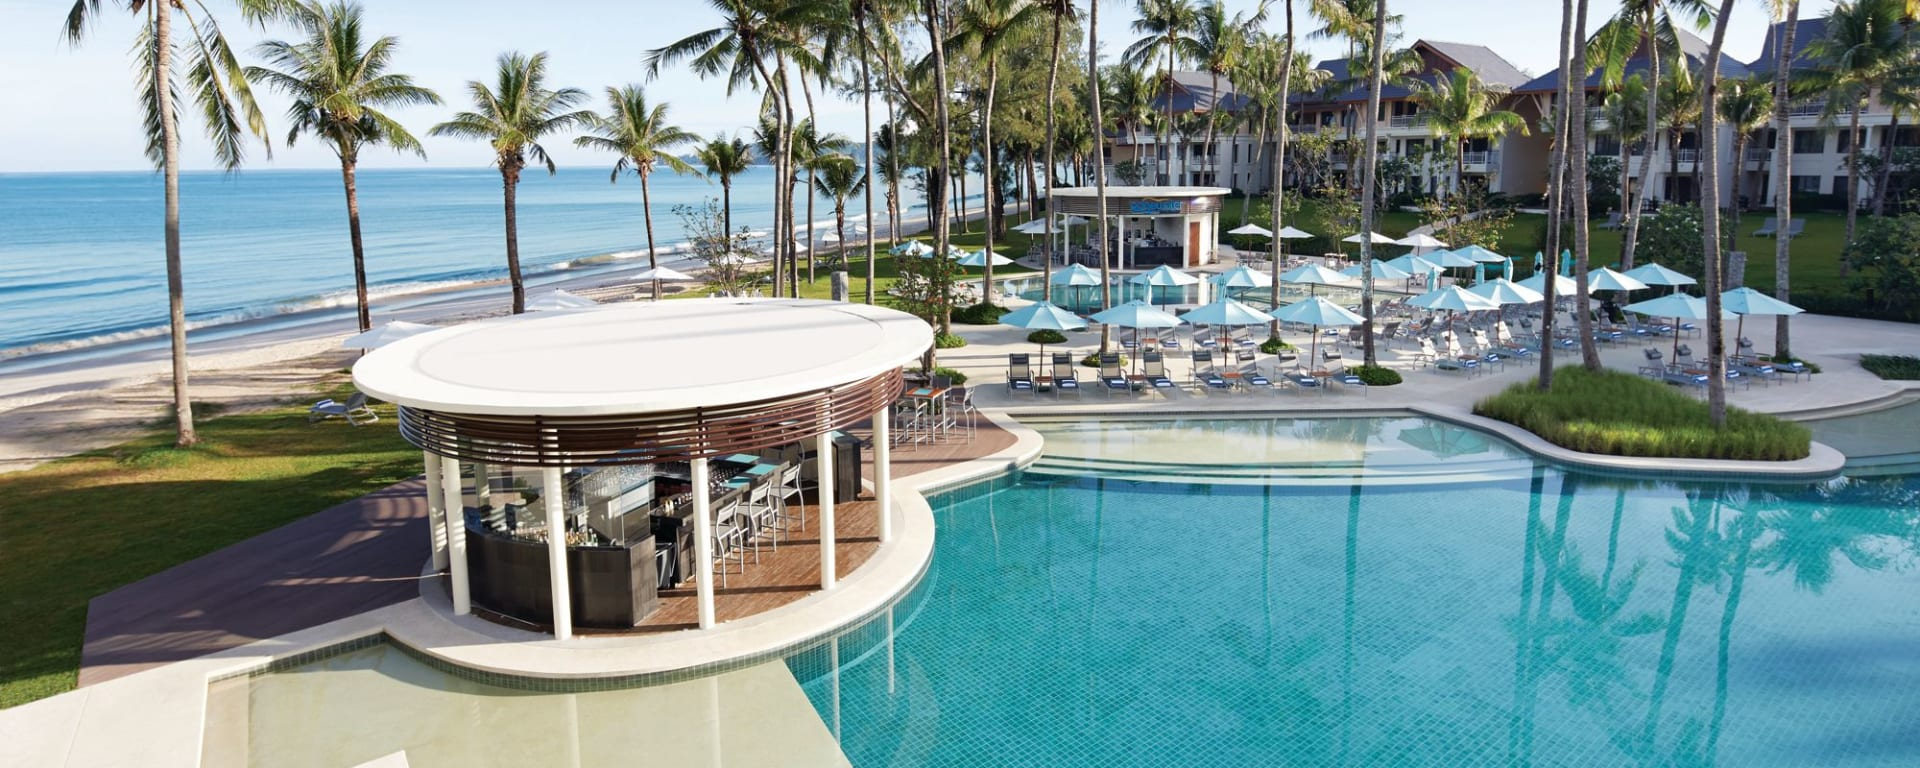 Outrigger Laguna Phuket Beach Resort: Restaurant & Bar - Edgewater